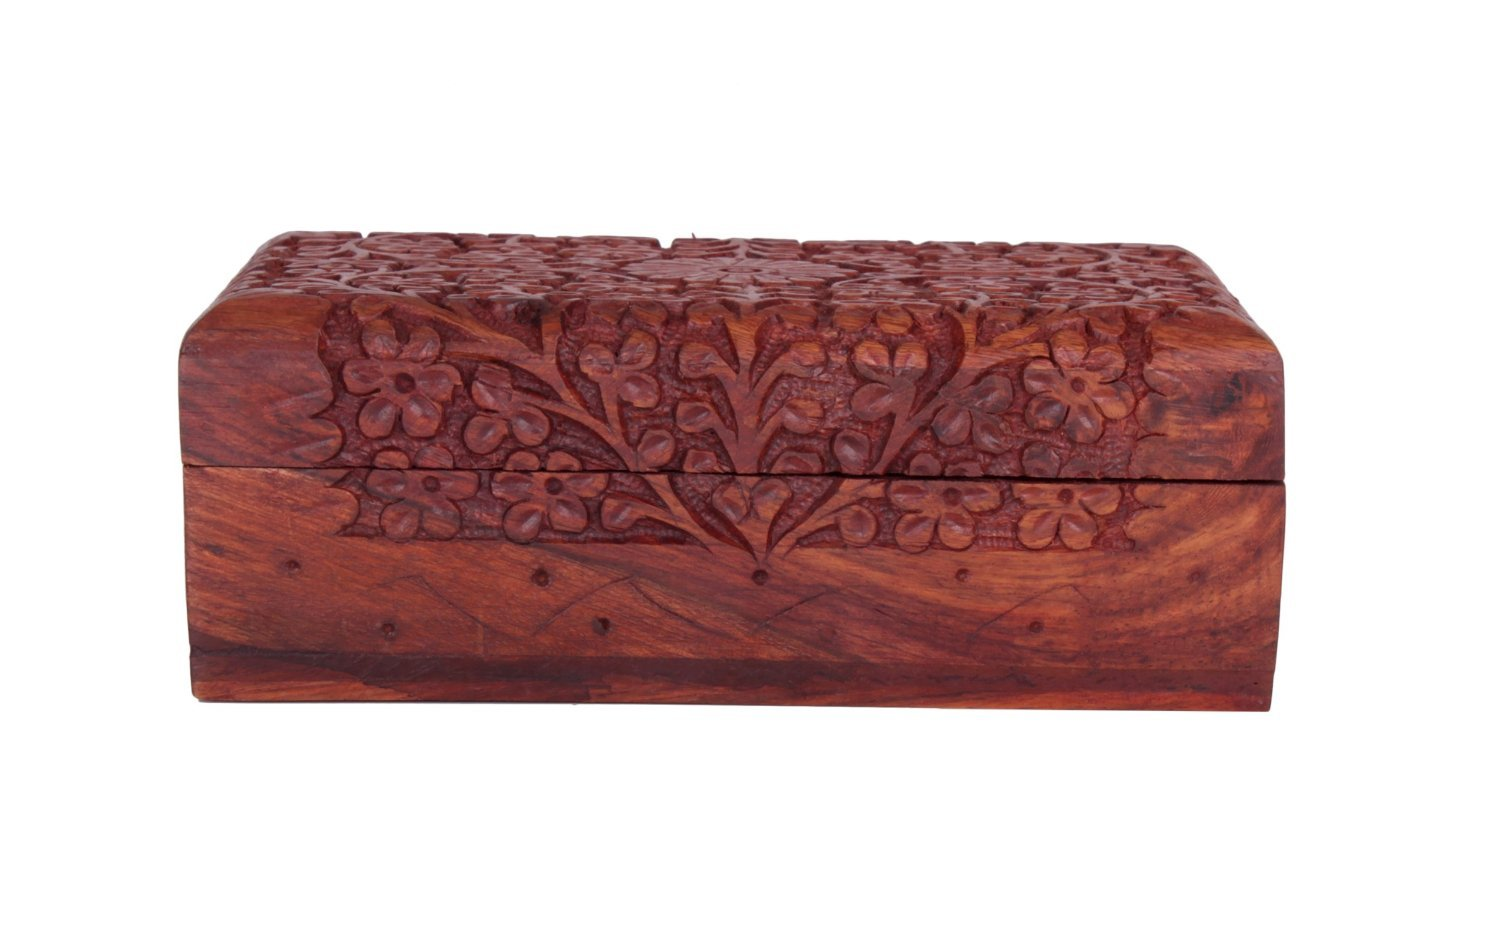 Exotic Rosewood Jewelry Box Organizer with Intricate Hand Chiseled Floral Patterns, 7 x 5 x 2.5 Inches